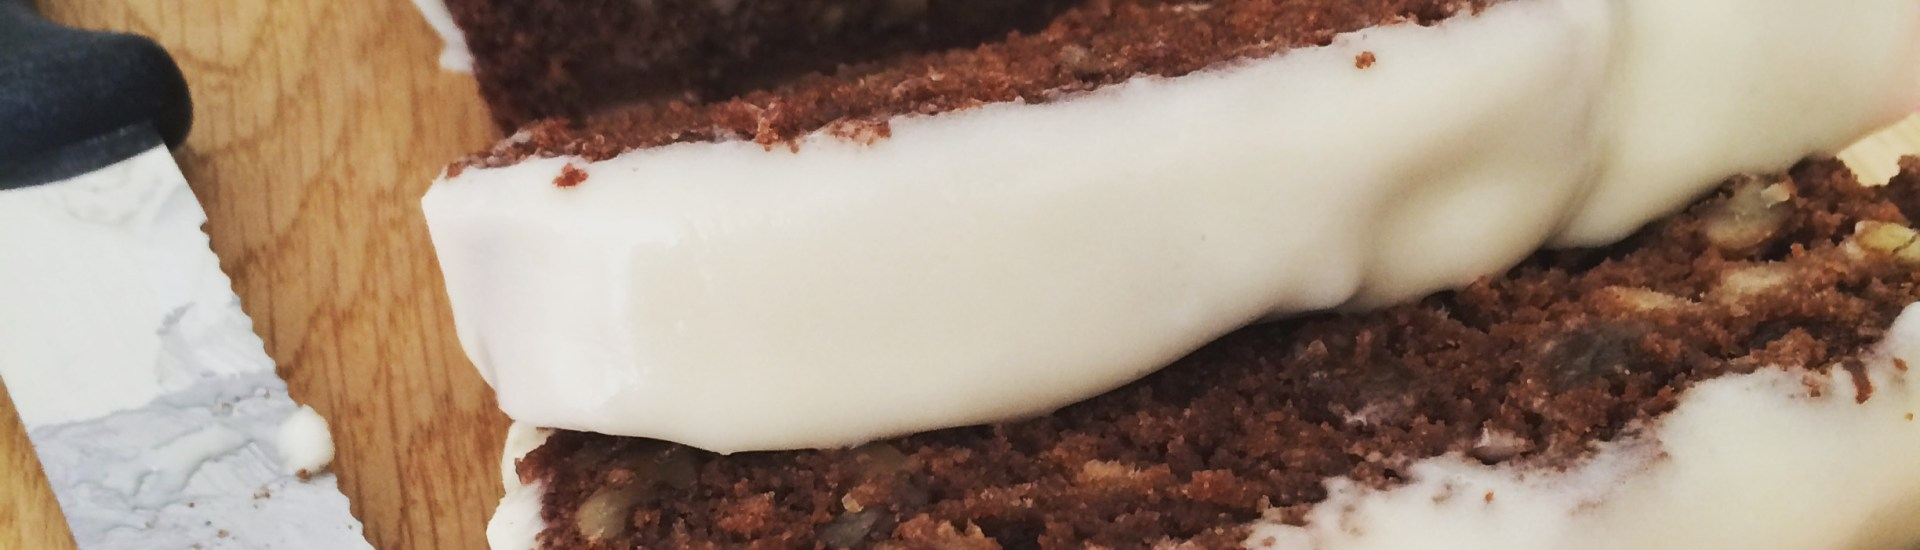 Chocolate banana bread with rum cream cheese frosting - Baked to Imperfection